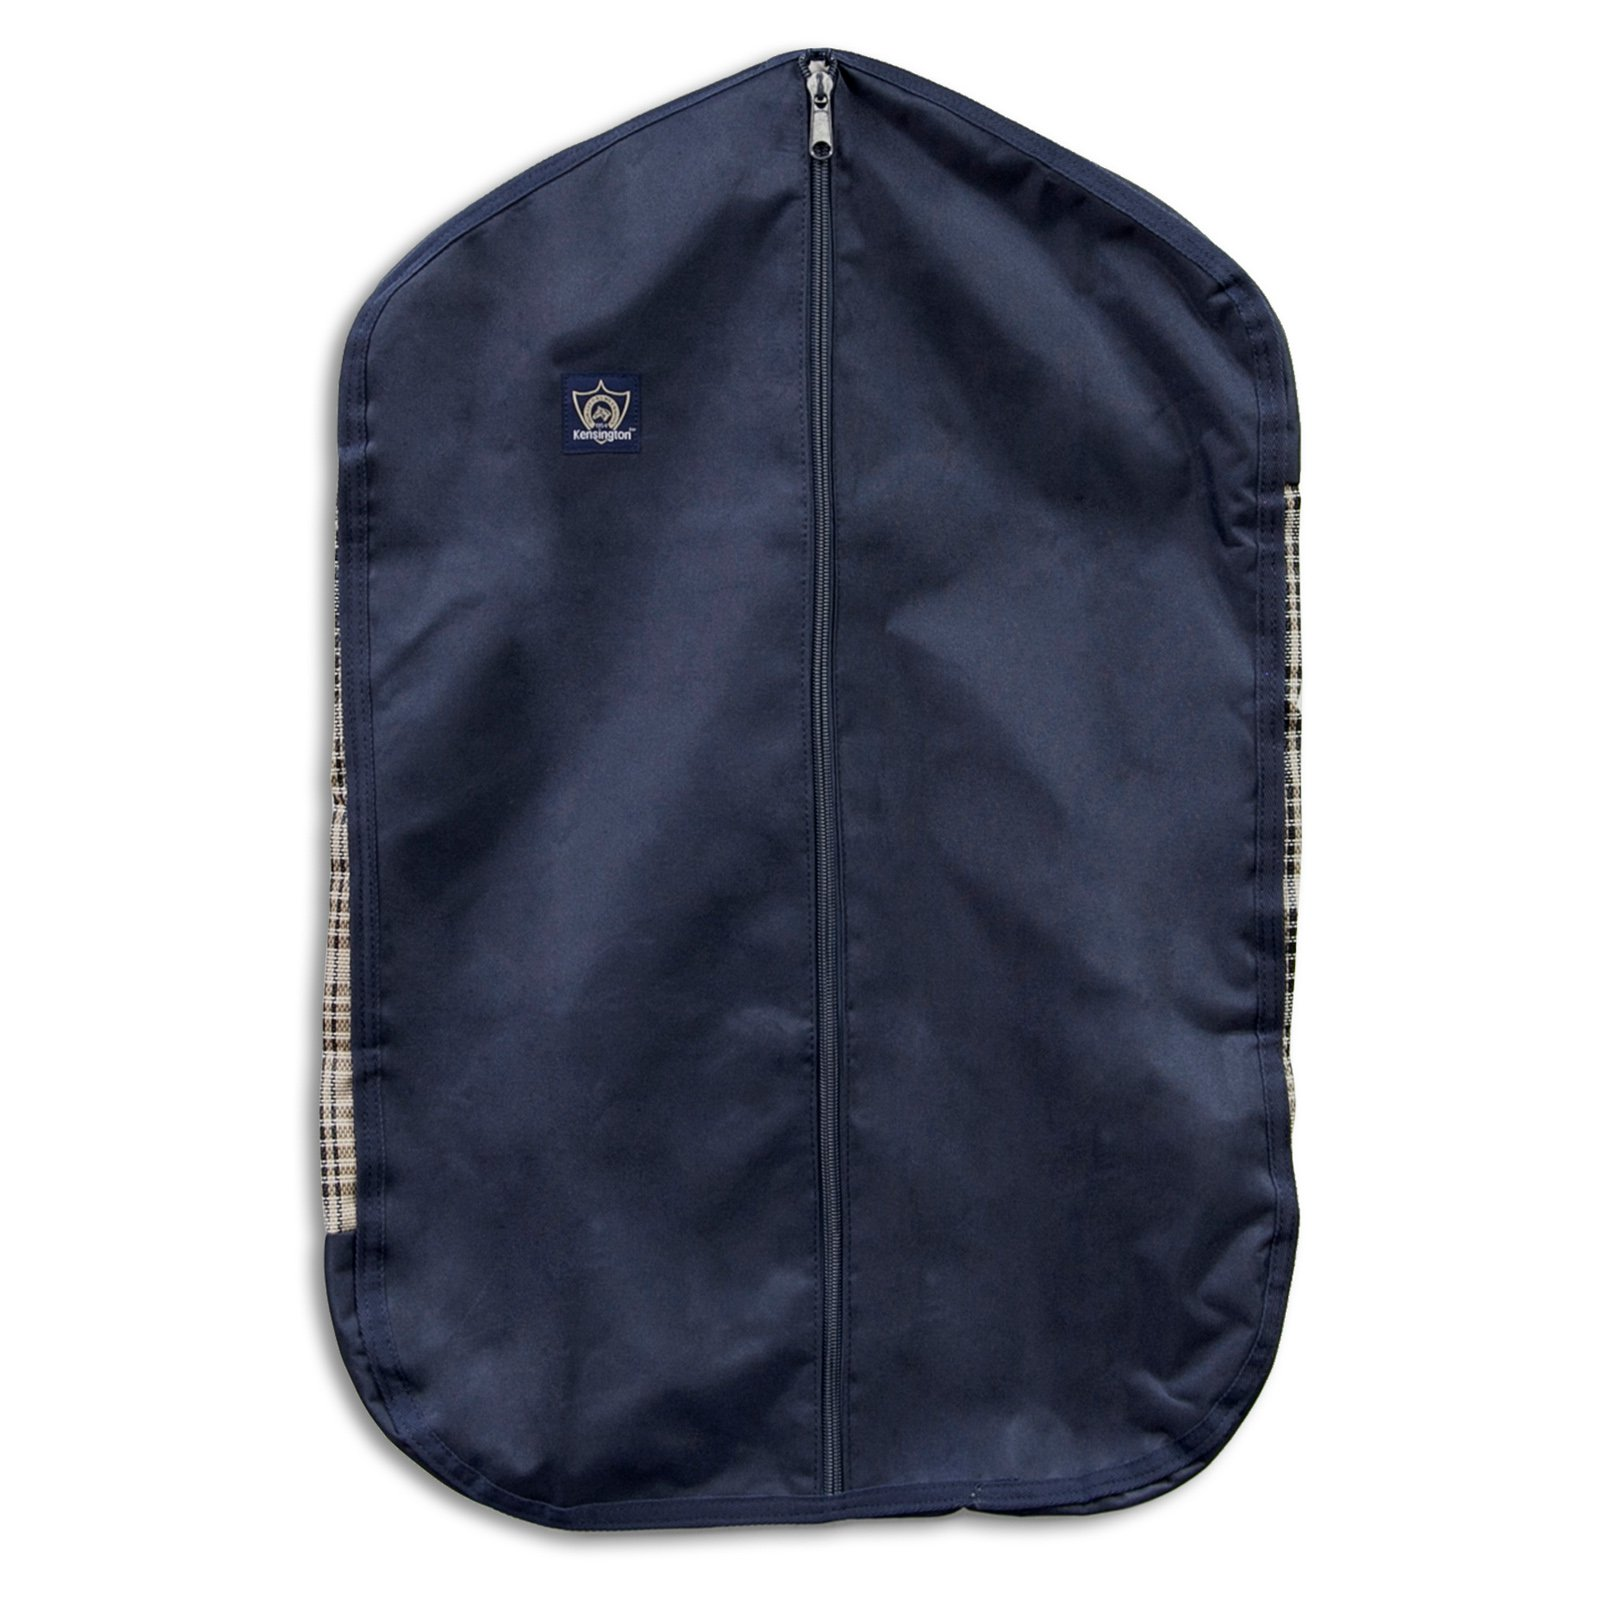 Kensington Protective Products All-Around Garment Carry Bag